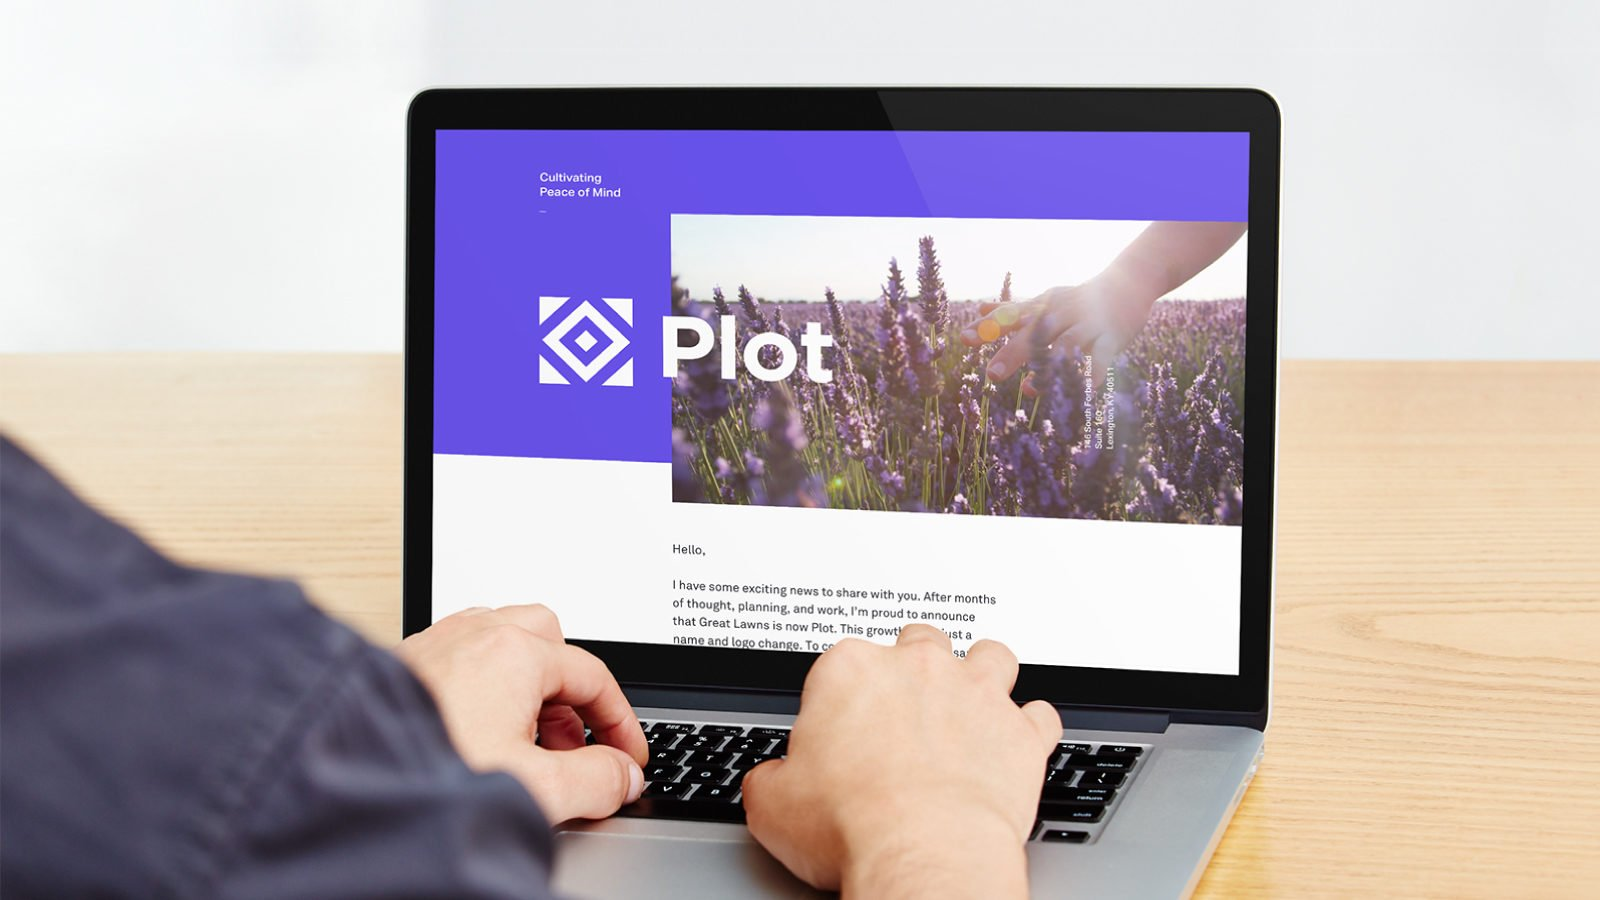 A Brand Identity for Plot Landscaping by Bullhorn Creative